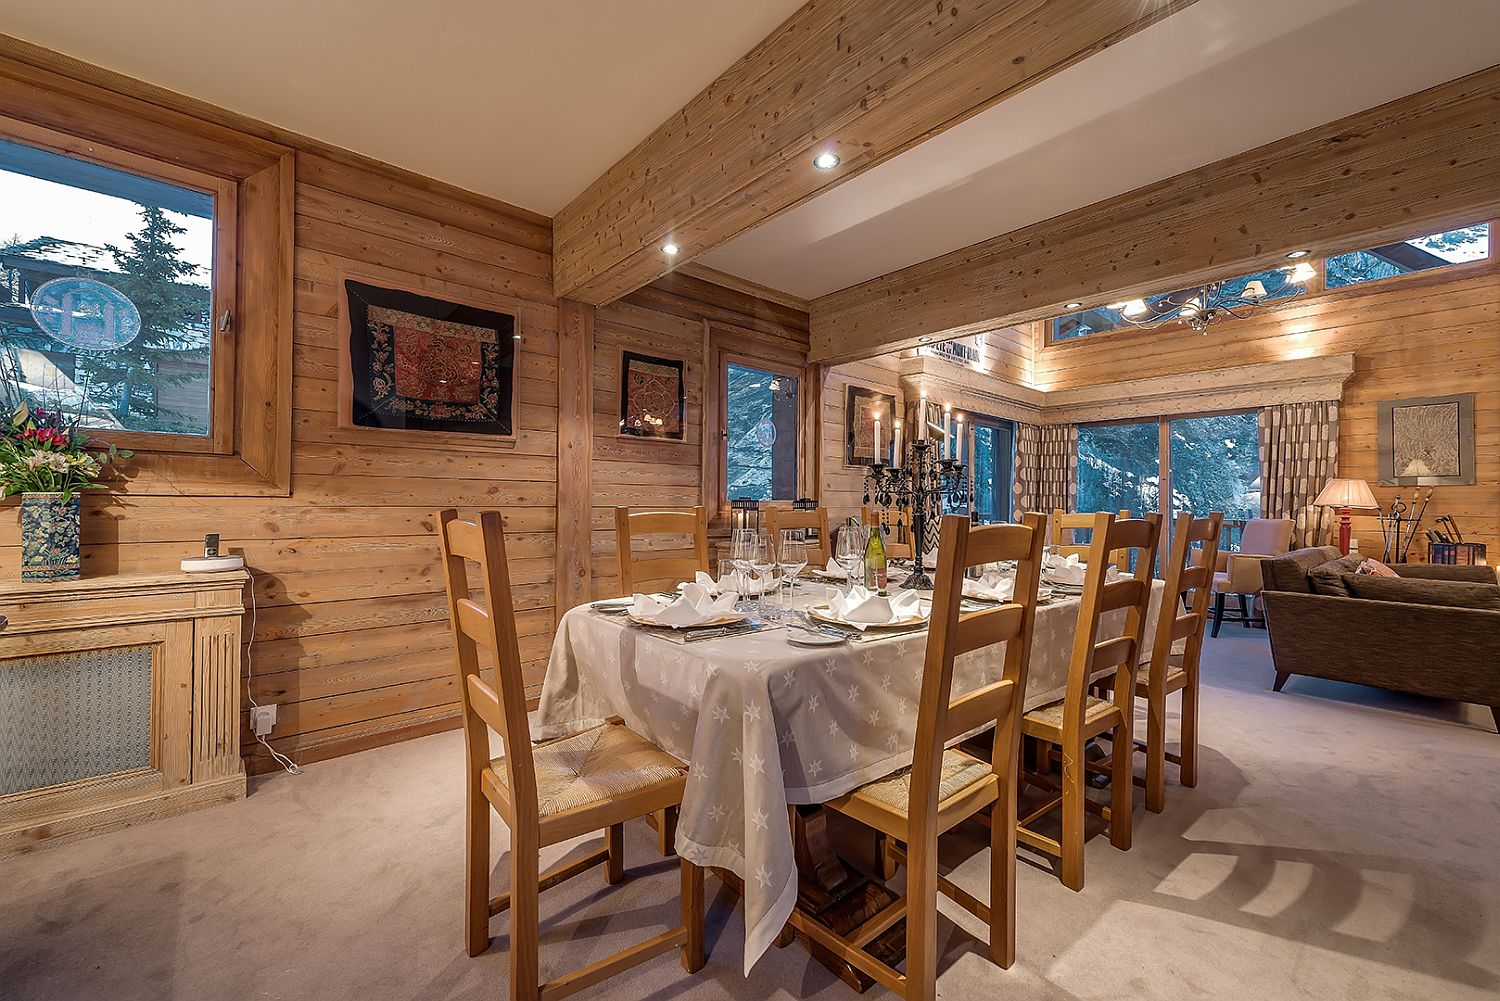 Dashing-chalet-dining-room-with-classic-and-modern-vibes-intertwined